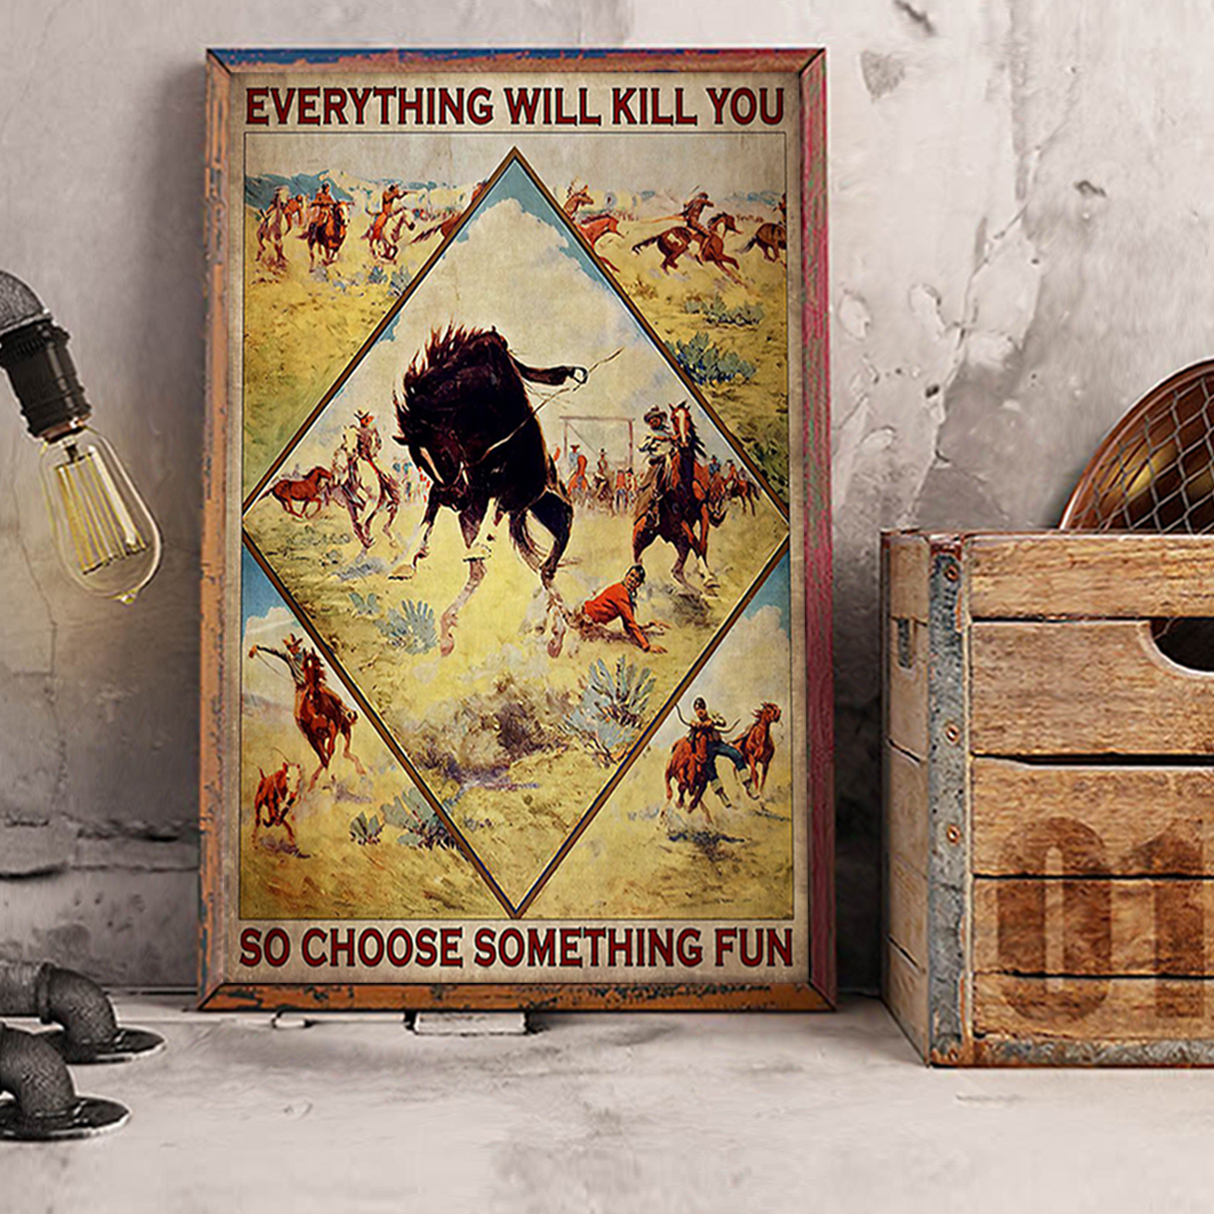 Cowboy rodeo everything will kill you so choose something fun poster A1